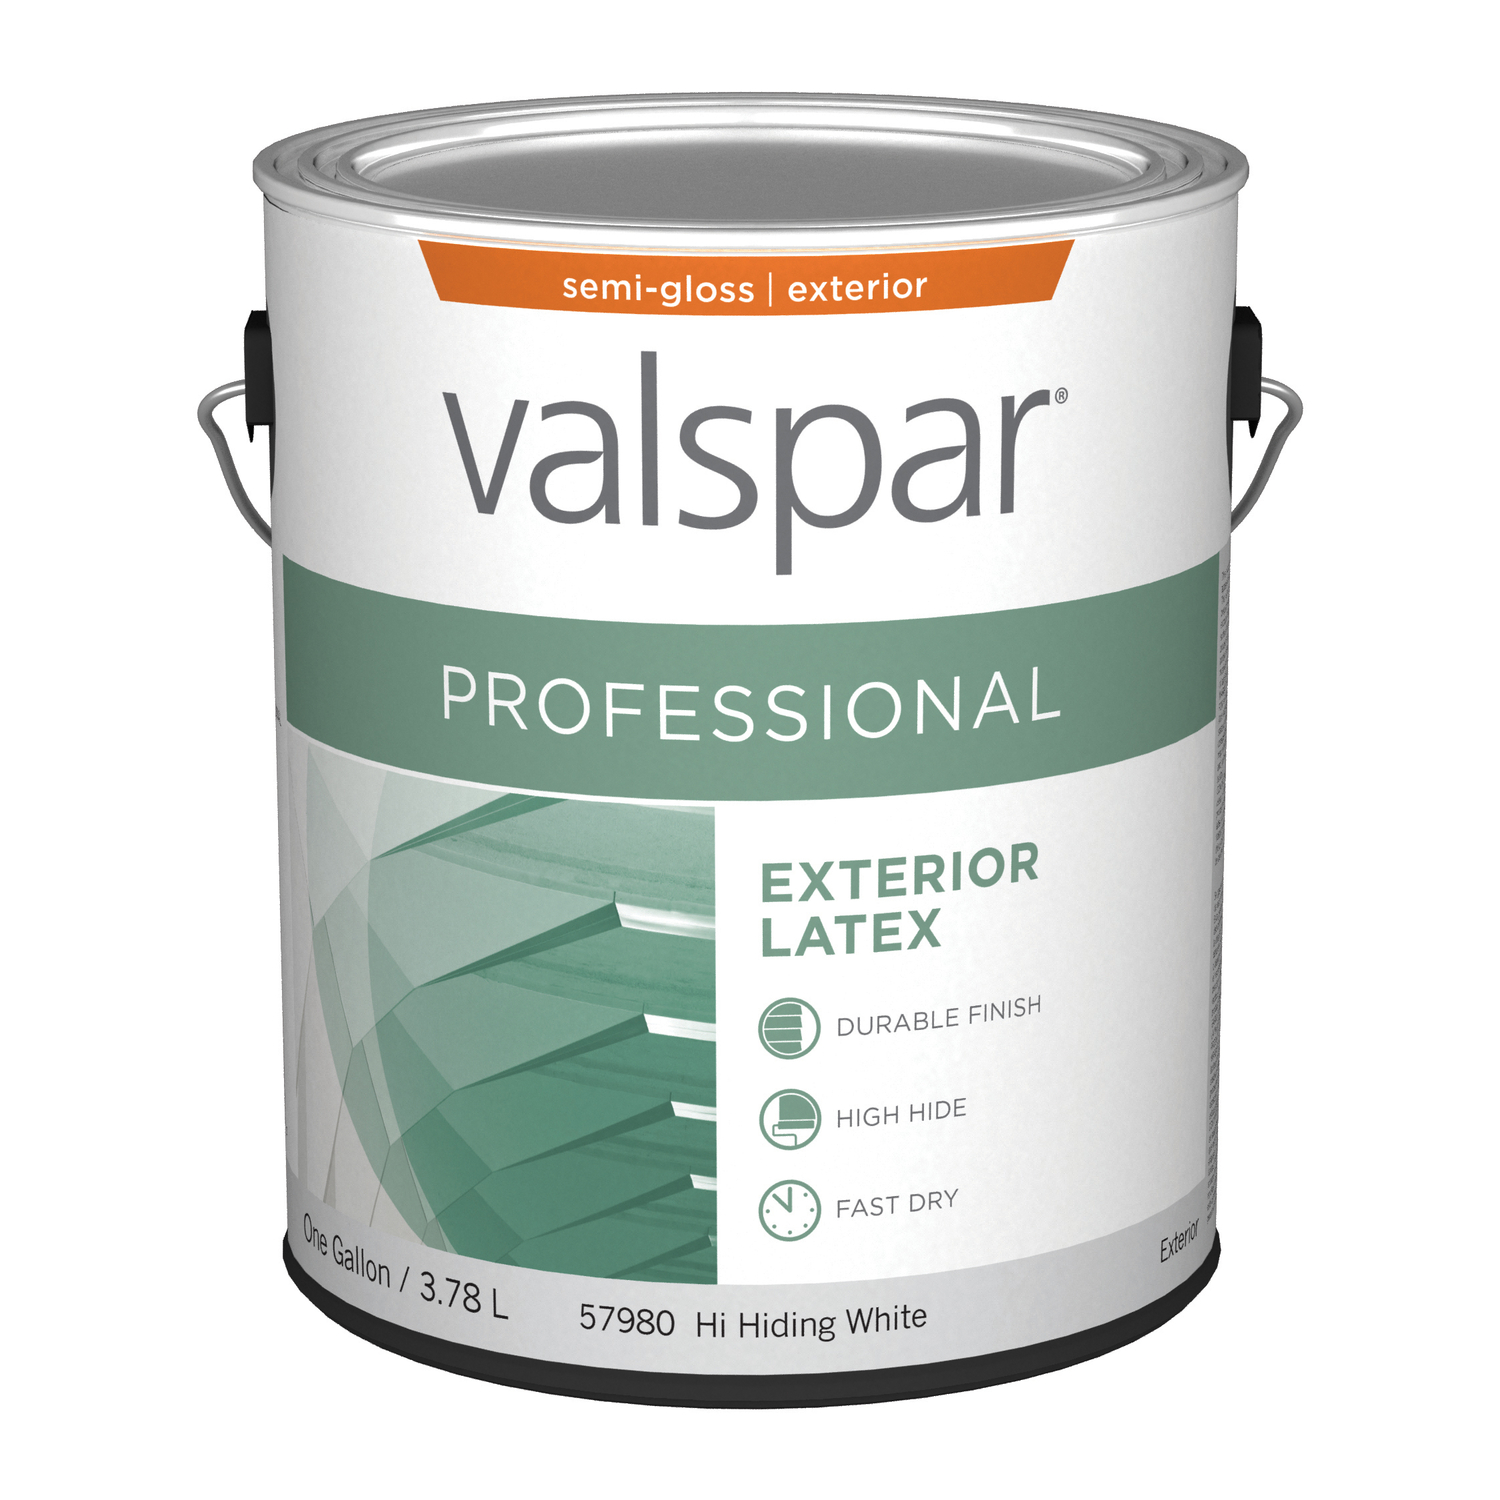 Valspar  Contractor Professional  Semi-Gloss  Basic White  Acylic Latex  1 gal. Paint  White Base